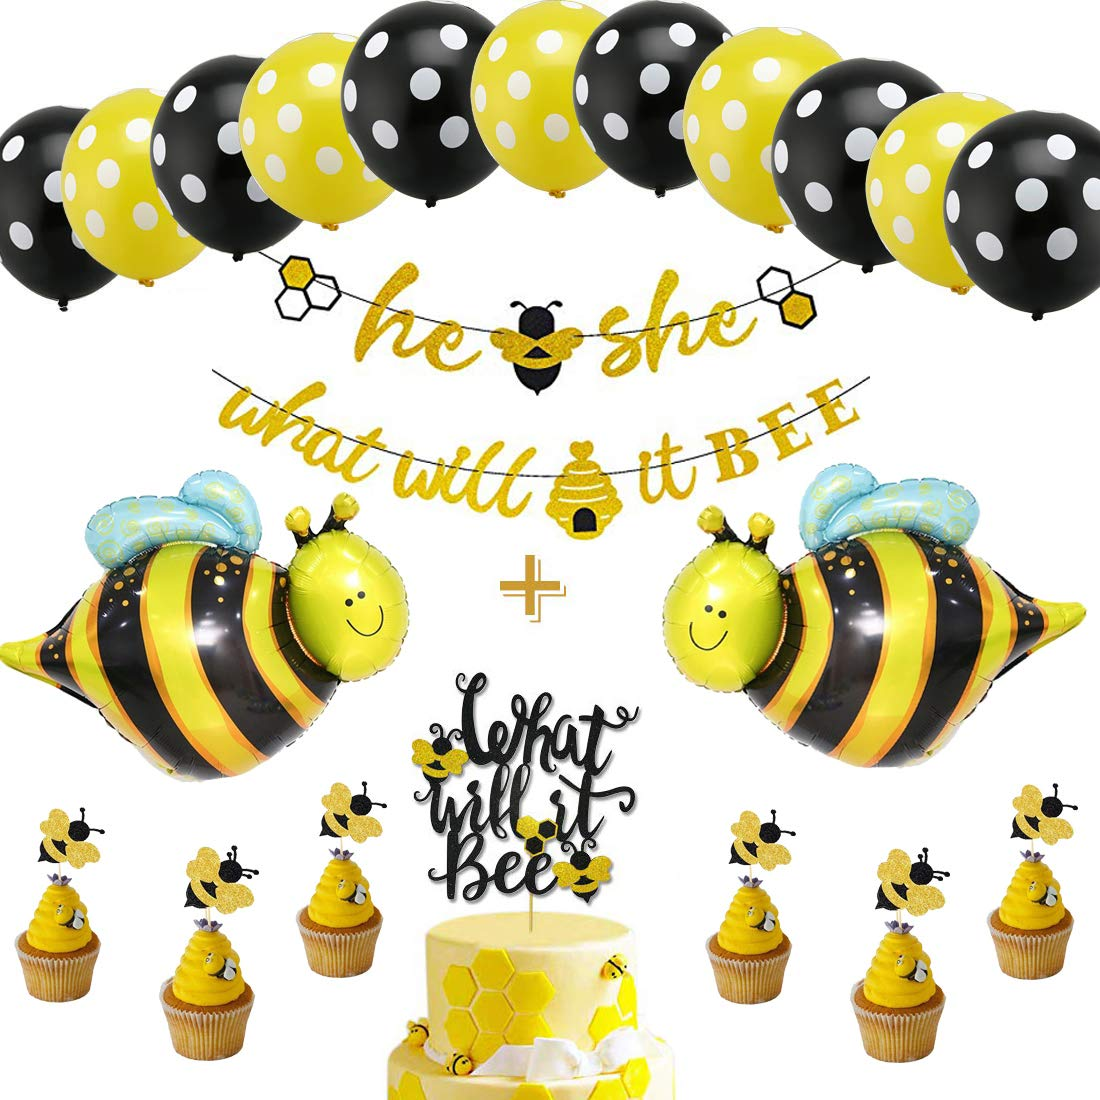 What Will It Bee Gender Reveal Party Decorations Set - He or She Bee Banner,Bumble Bee Cake Topper,12'' Yellow Black Polka Dot Balloons Latex Balloons,Boy or Girl Themed Baby Shower by zorpia